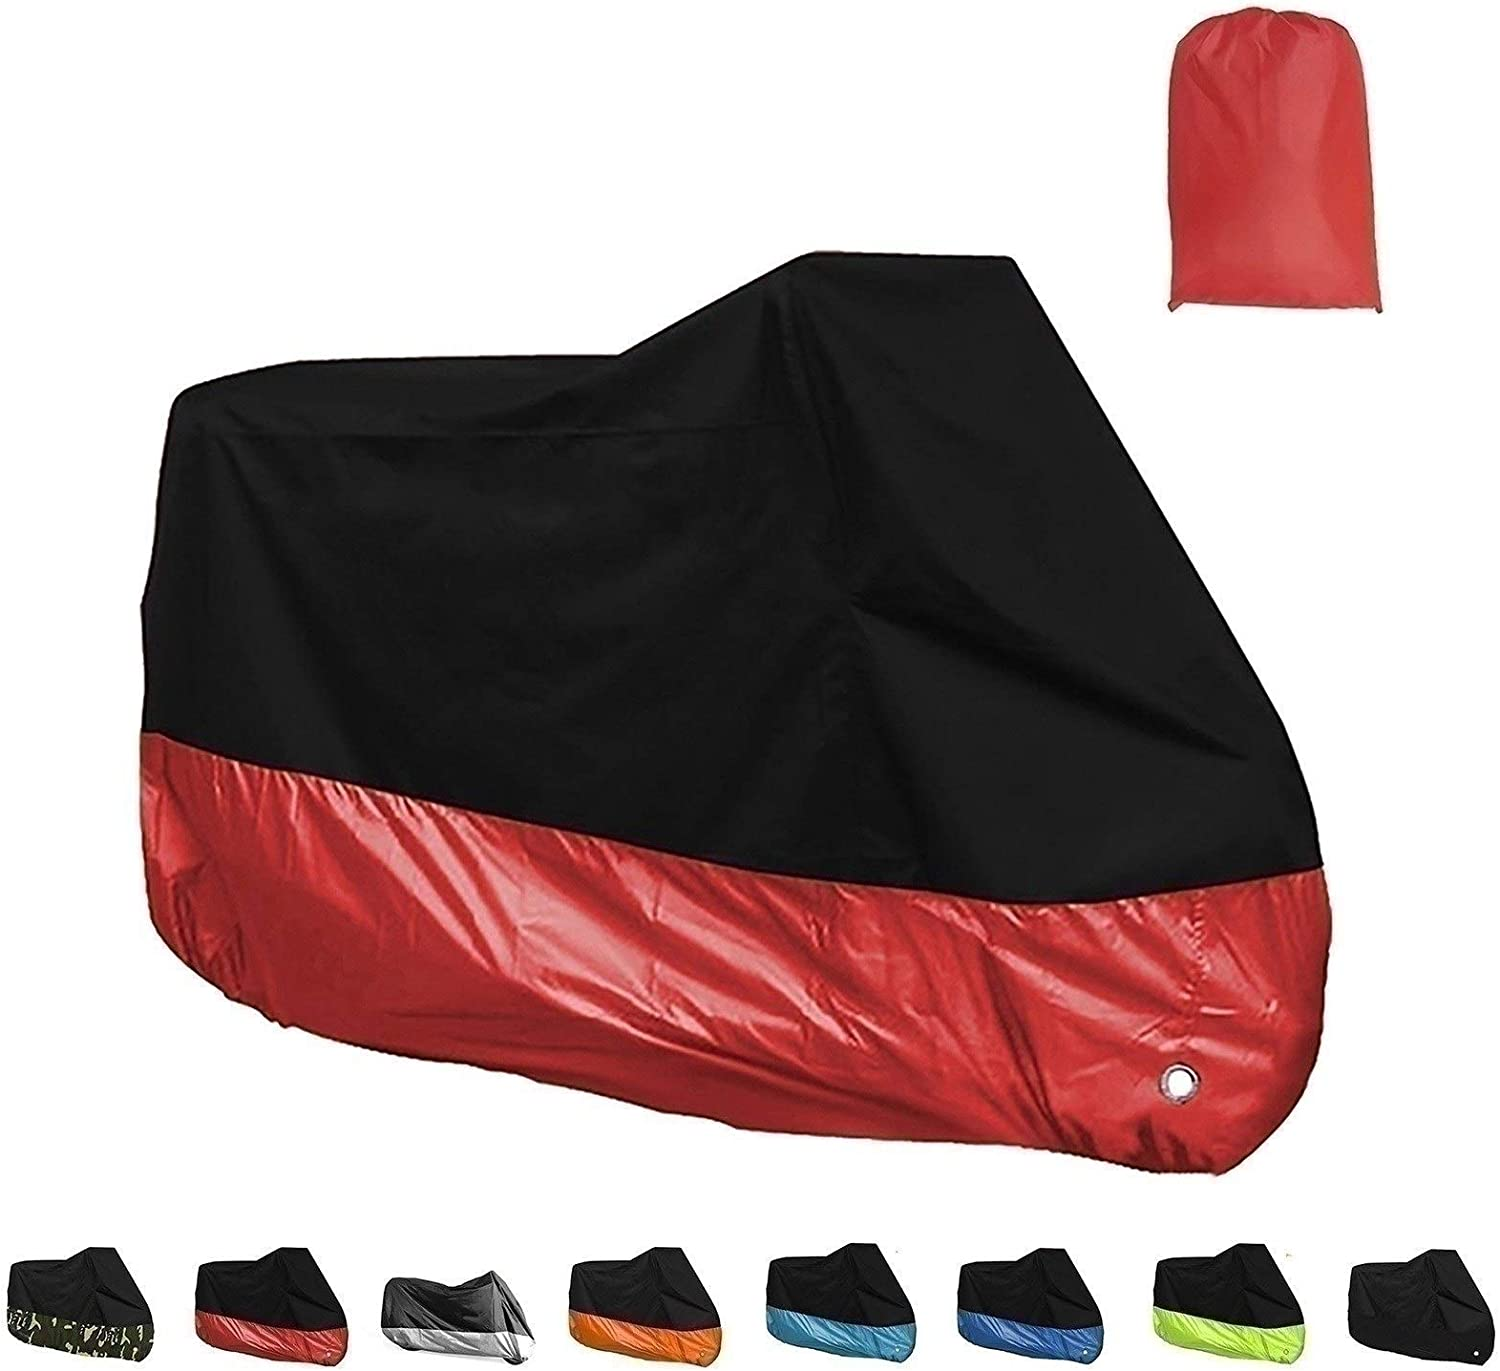 Motorcycle Covers A Super-cheap surprise price is realized Compatible with Honda Cover CBR250R